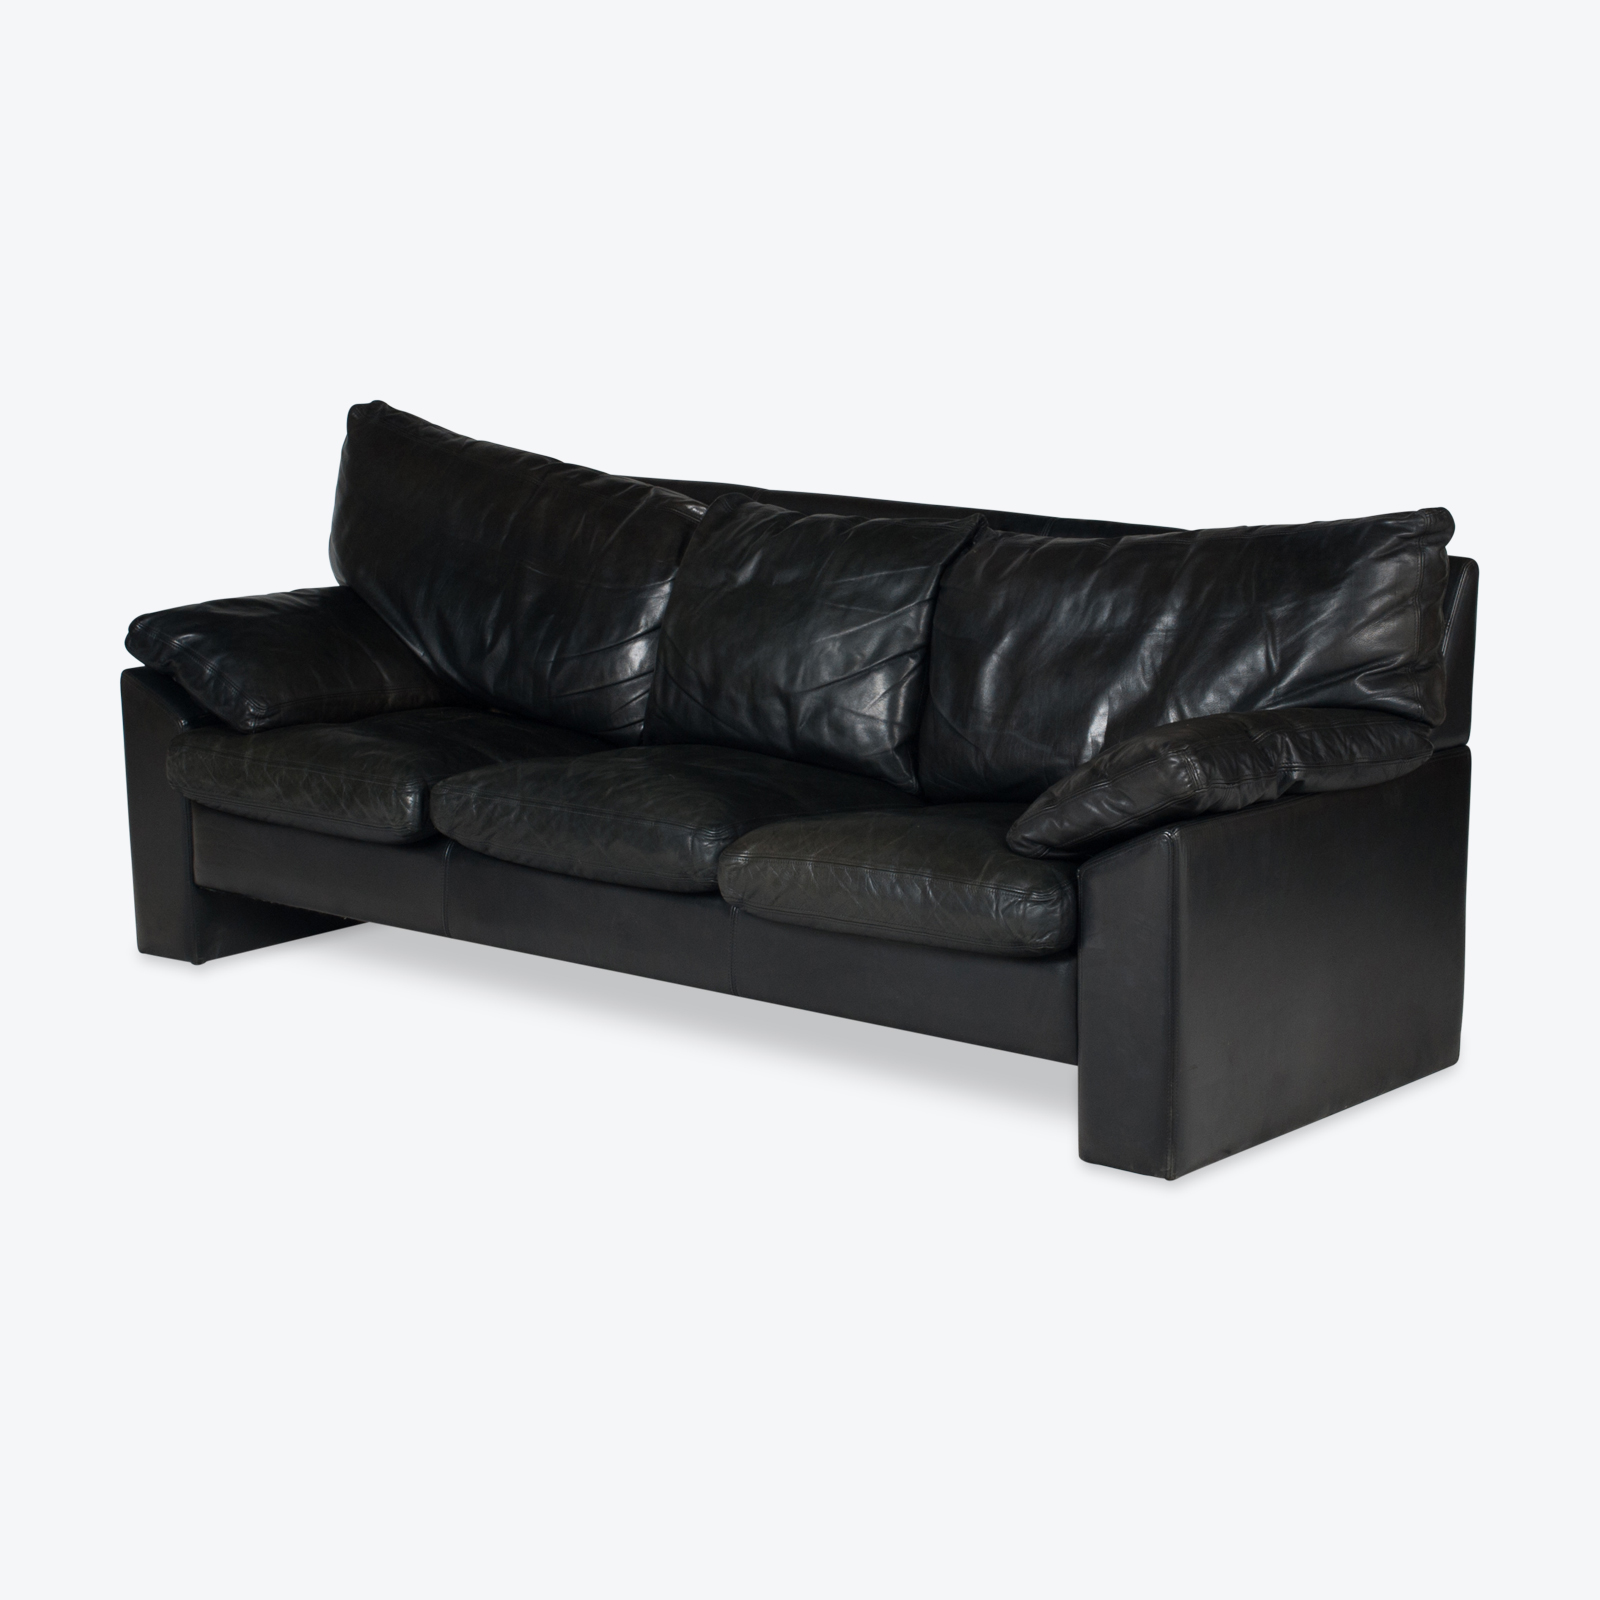 3 Seat Sofa By Stouby In Black Leather, 1960s, Denmark Hero 1